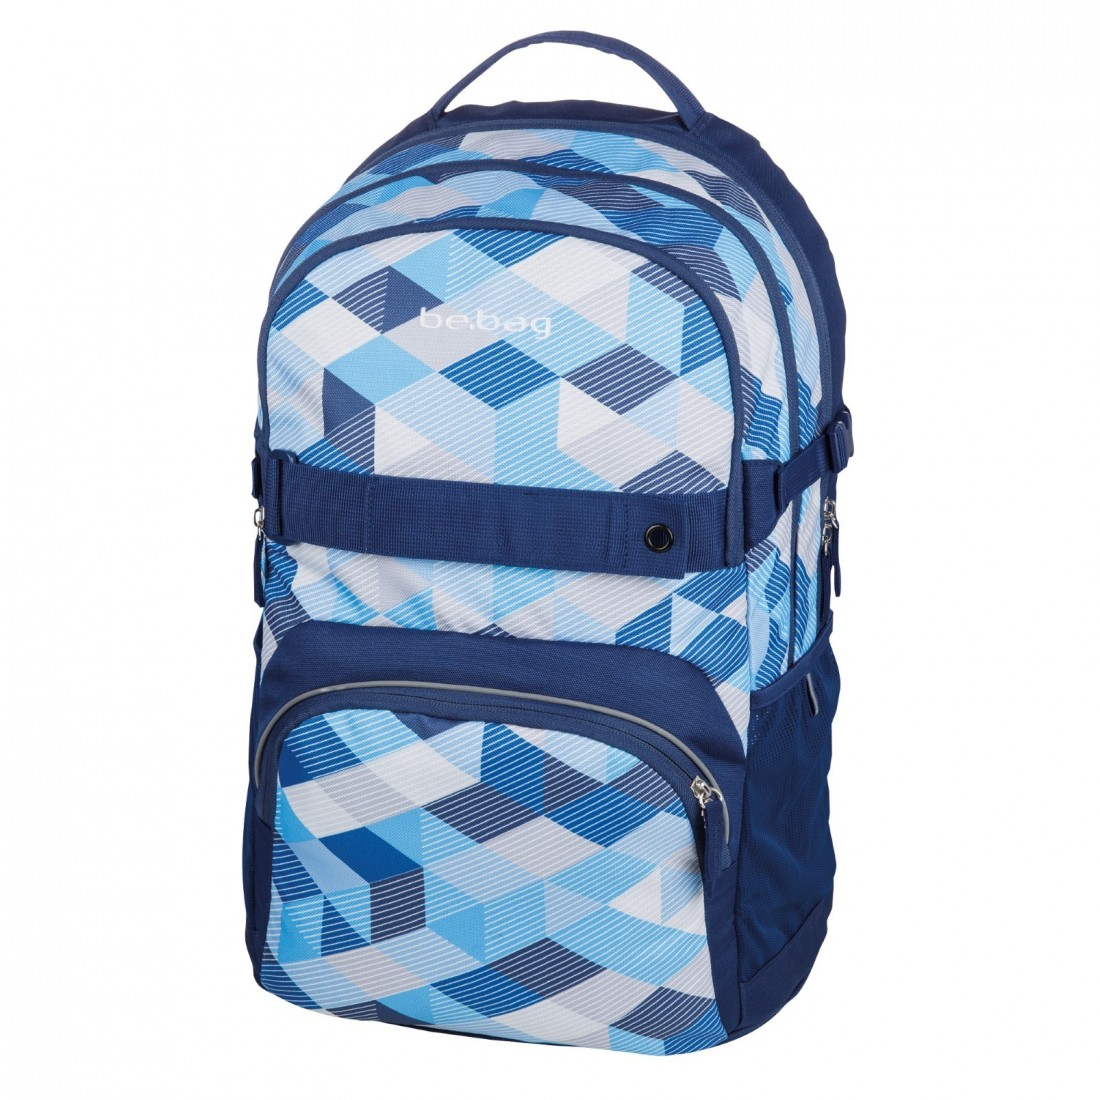 PLECAK HERLITZ BE.BAG CUBE BLUE CHECKED